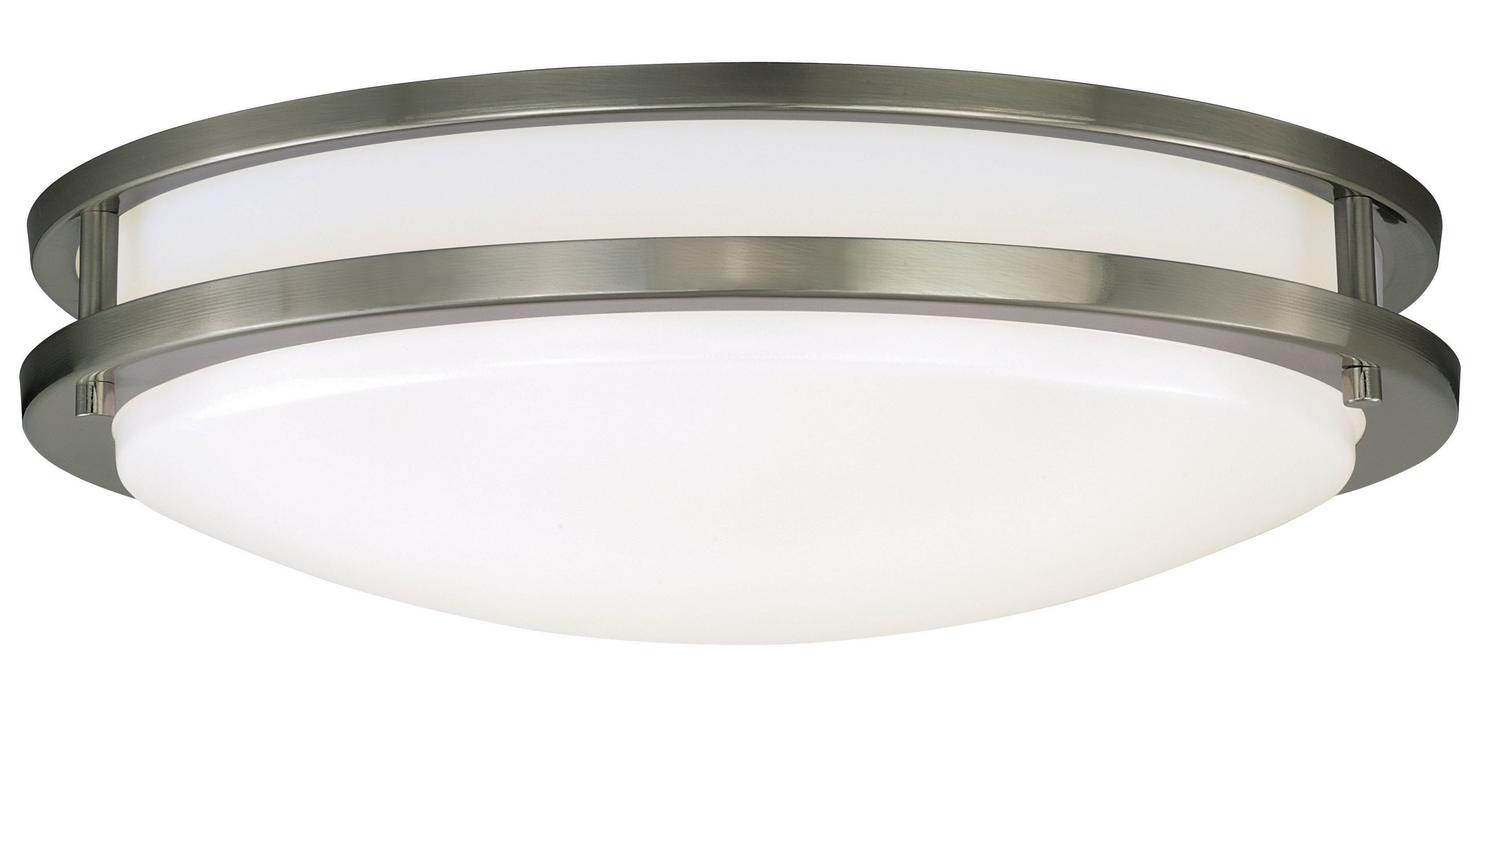 Led Flush Mount From The Horizon Collection By Vaxcel C0106